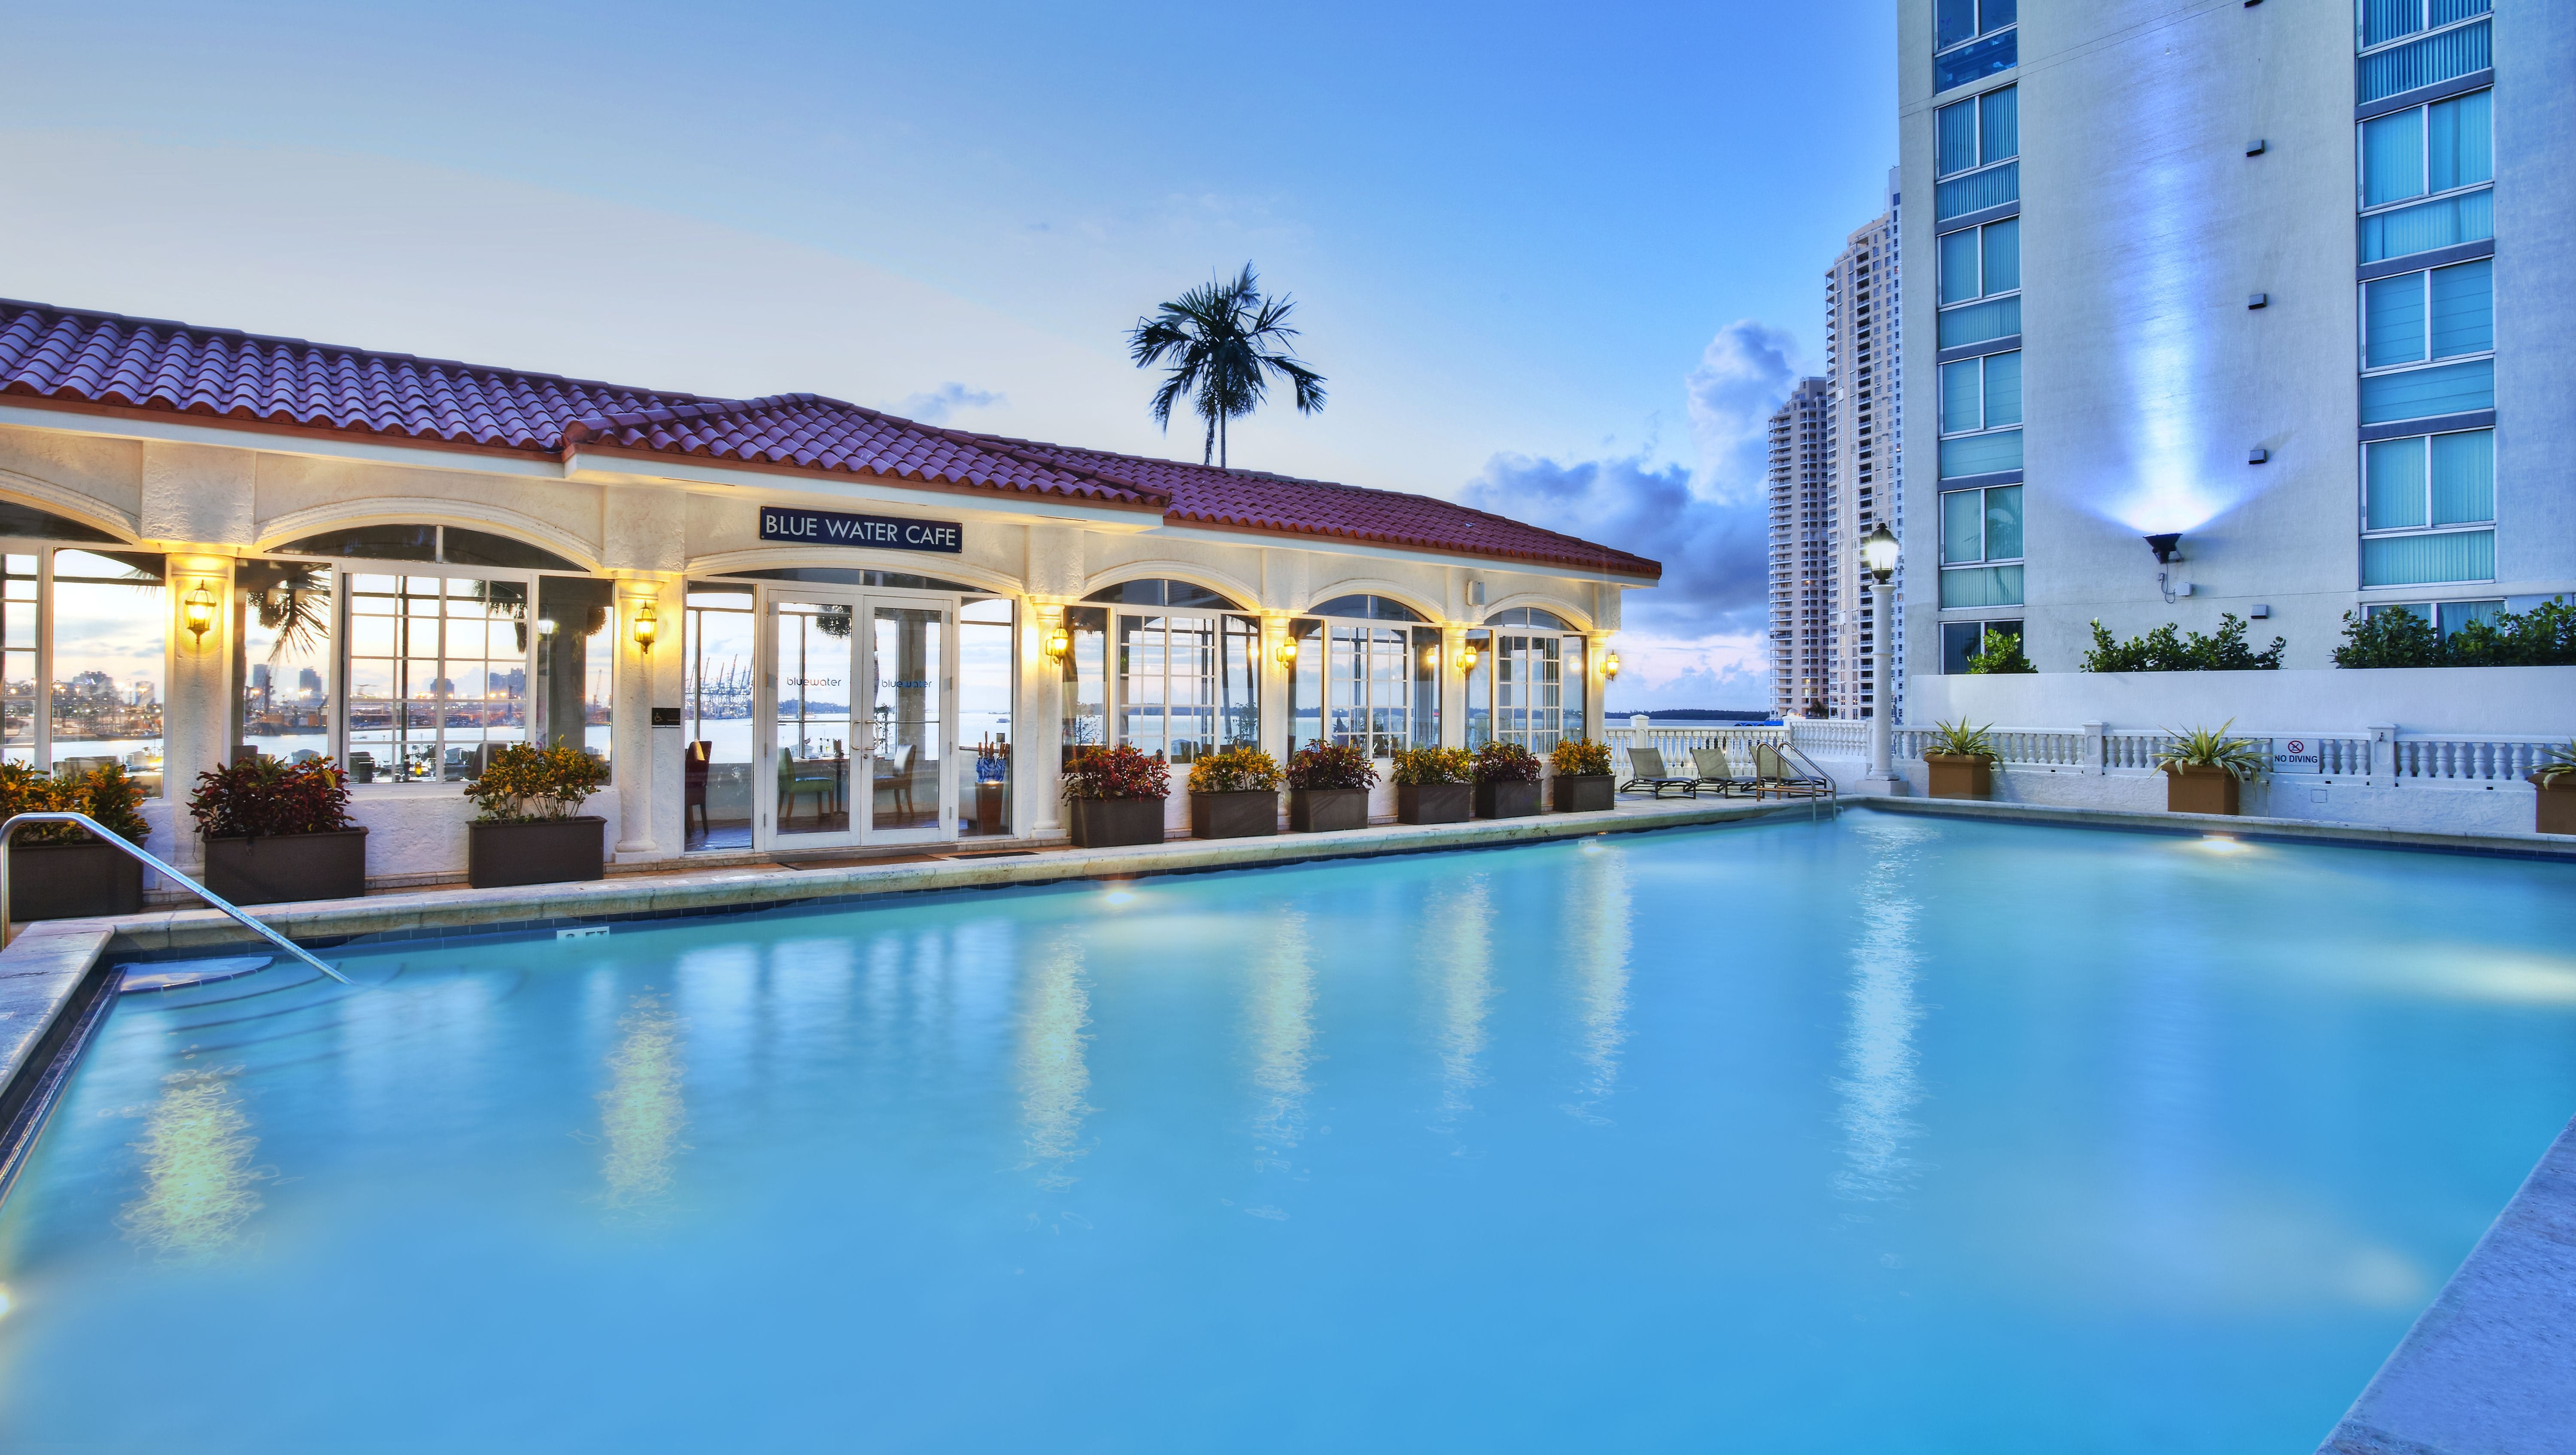 Hotels In Key Biscayne Miami Florida